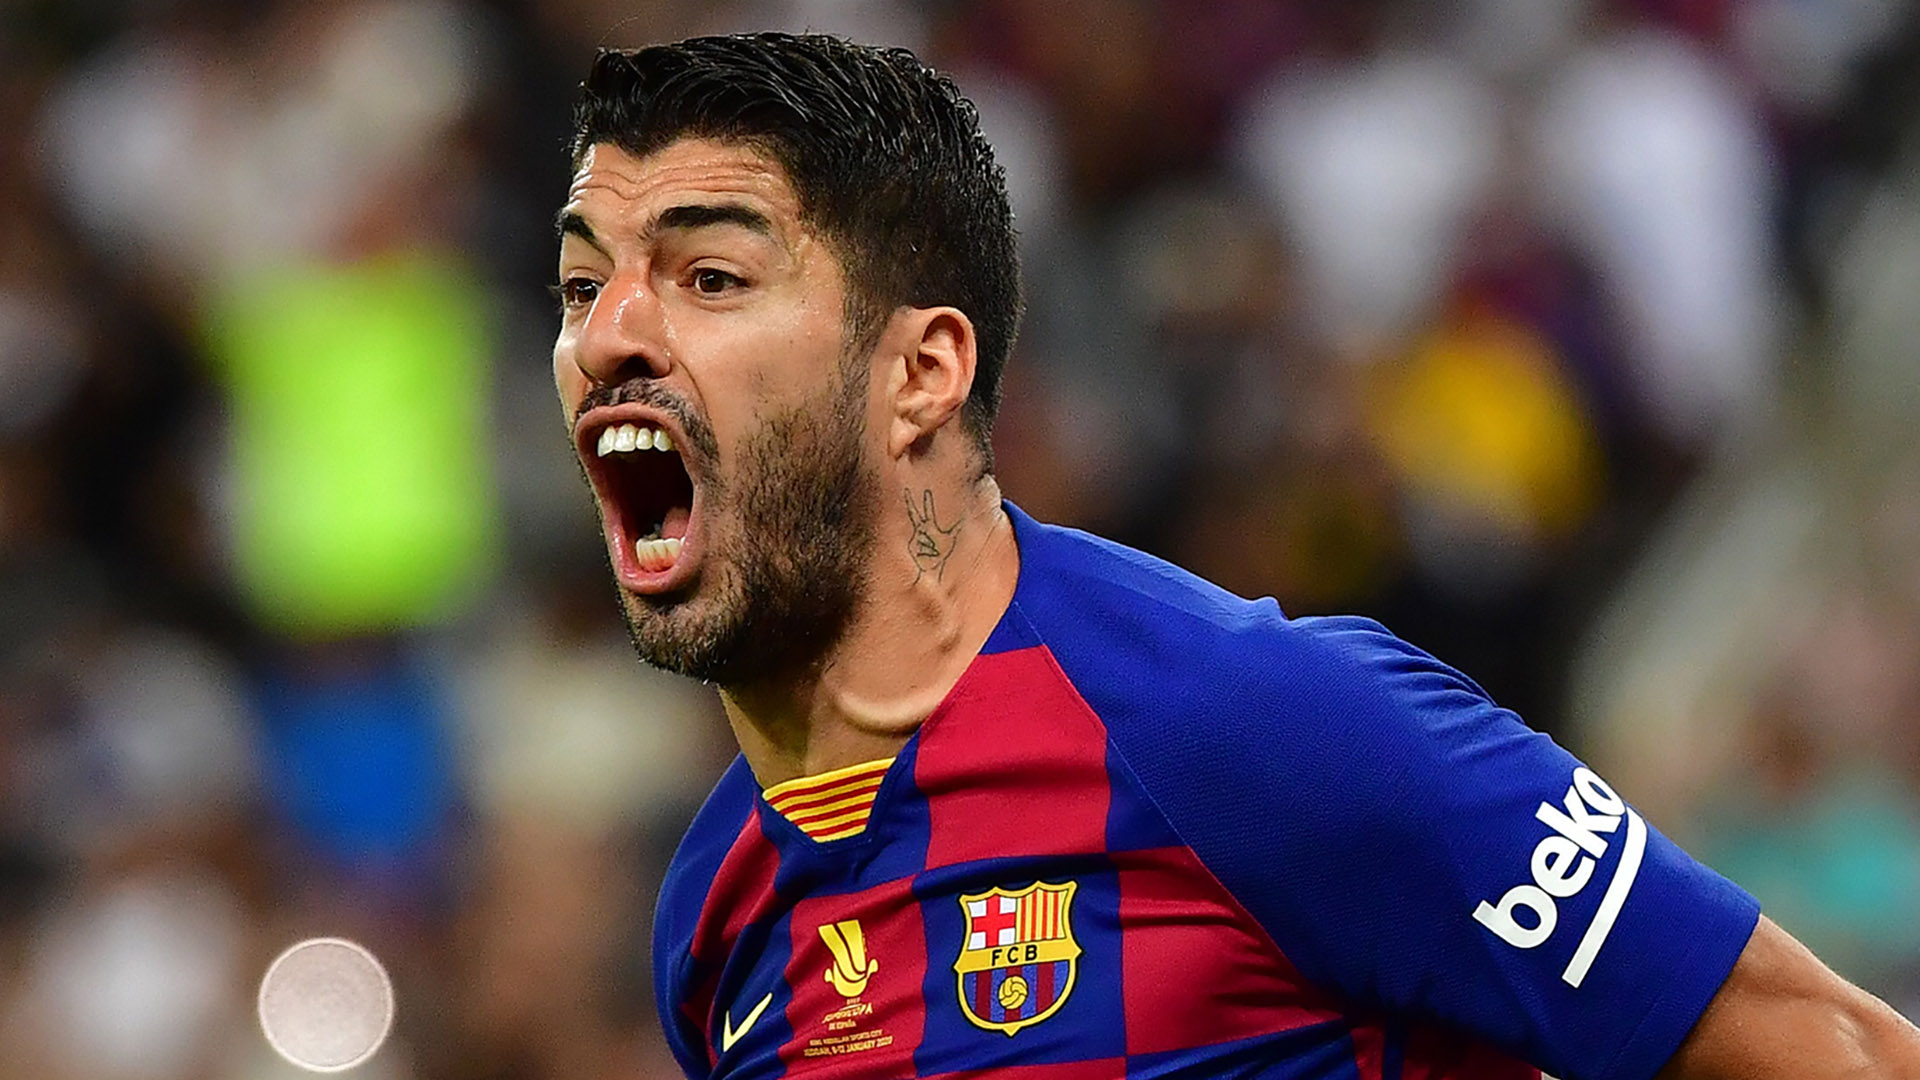 Barcelona striker Suarez set for spell on sidelines as he undergoes knee surgery